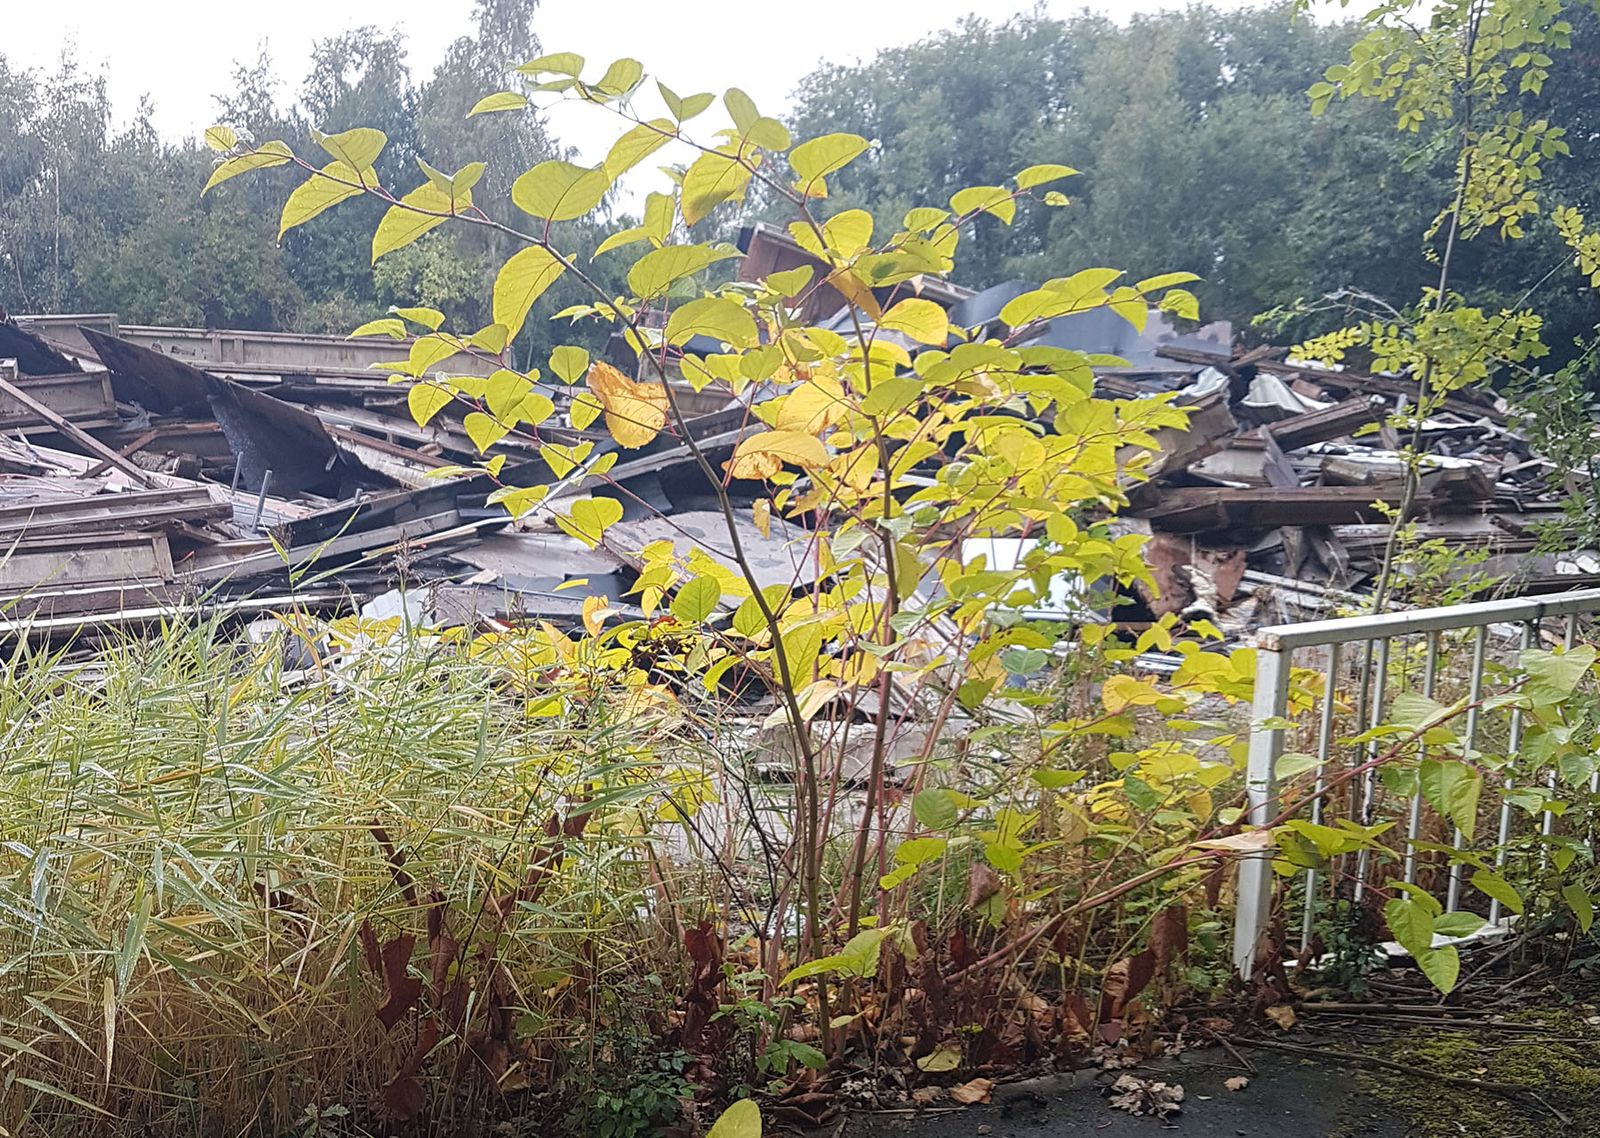 japanese knotweed, invasive non-native species